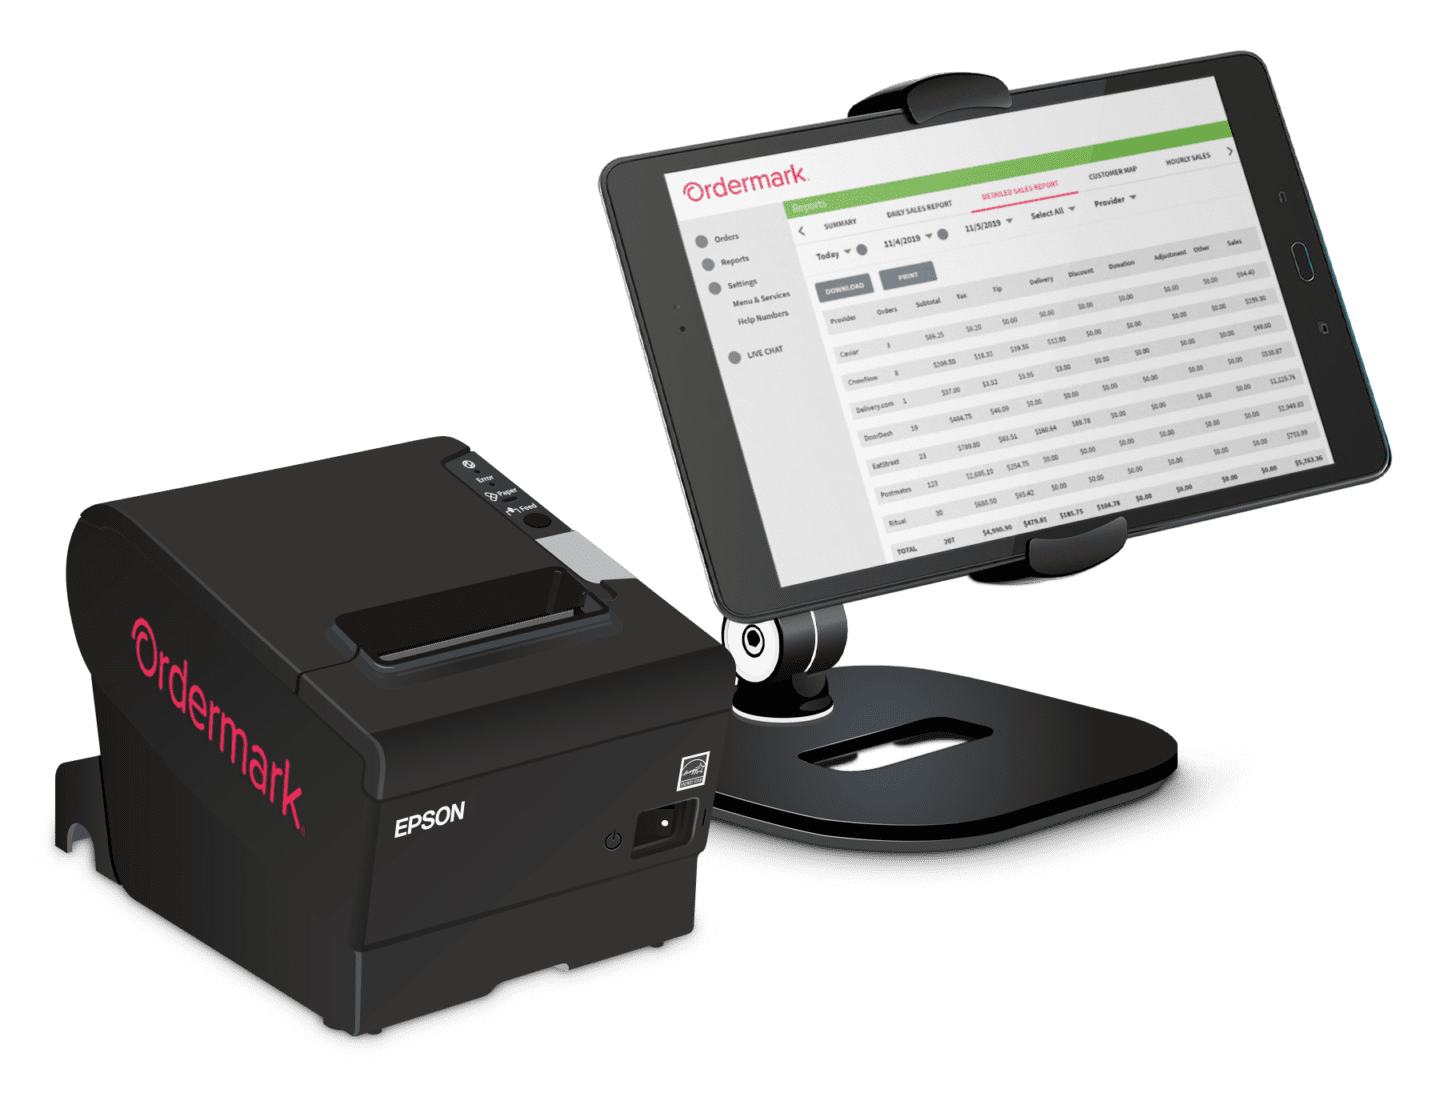 Ordermark printer and tablet at an angle on transparent background.